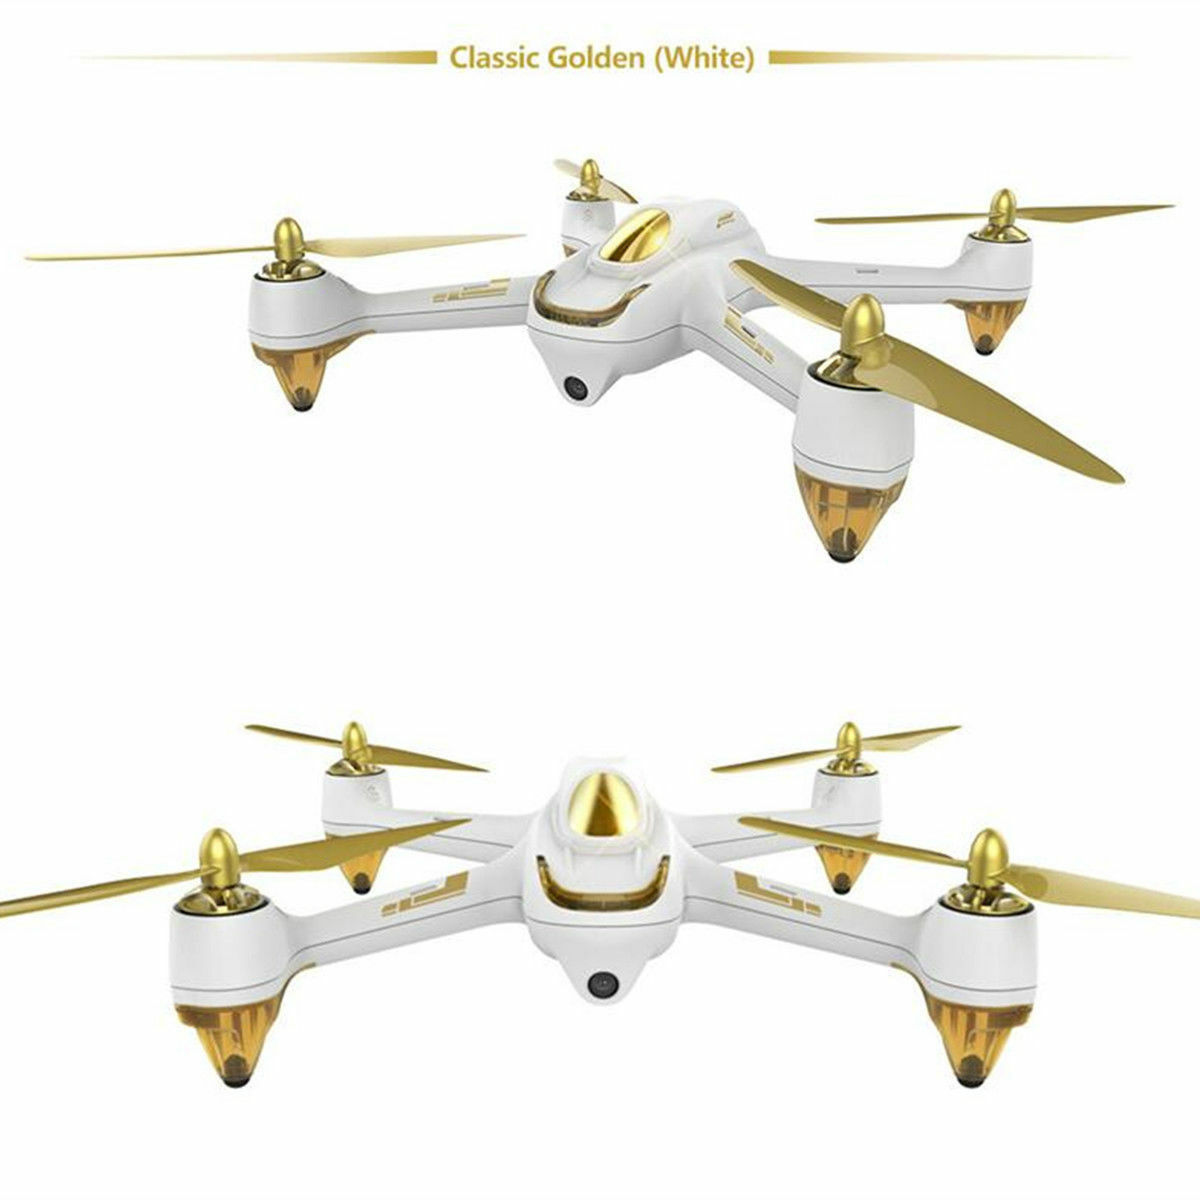 Hubsan X4 H501SS RC Quadcopter FPV FPV FPV Brushless 1080P GPS Drone, 2019 Latest Editio d3167f